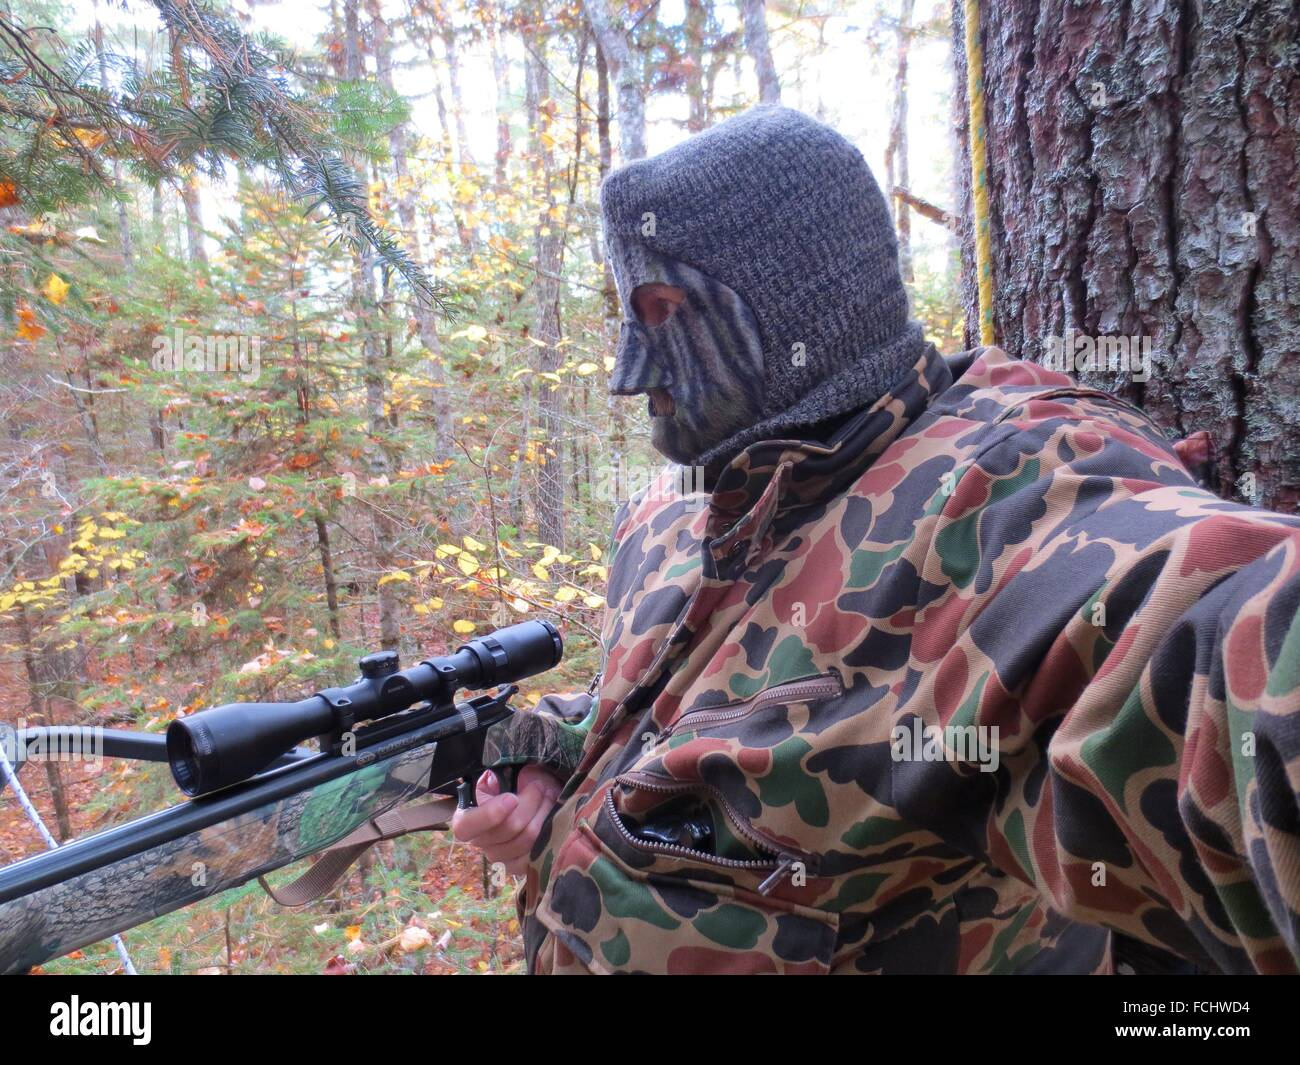 A deer hunter dressed in camo clothing hunting from a tree stand in a forest. - Stock Image